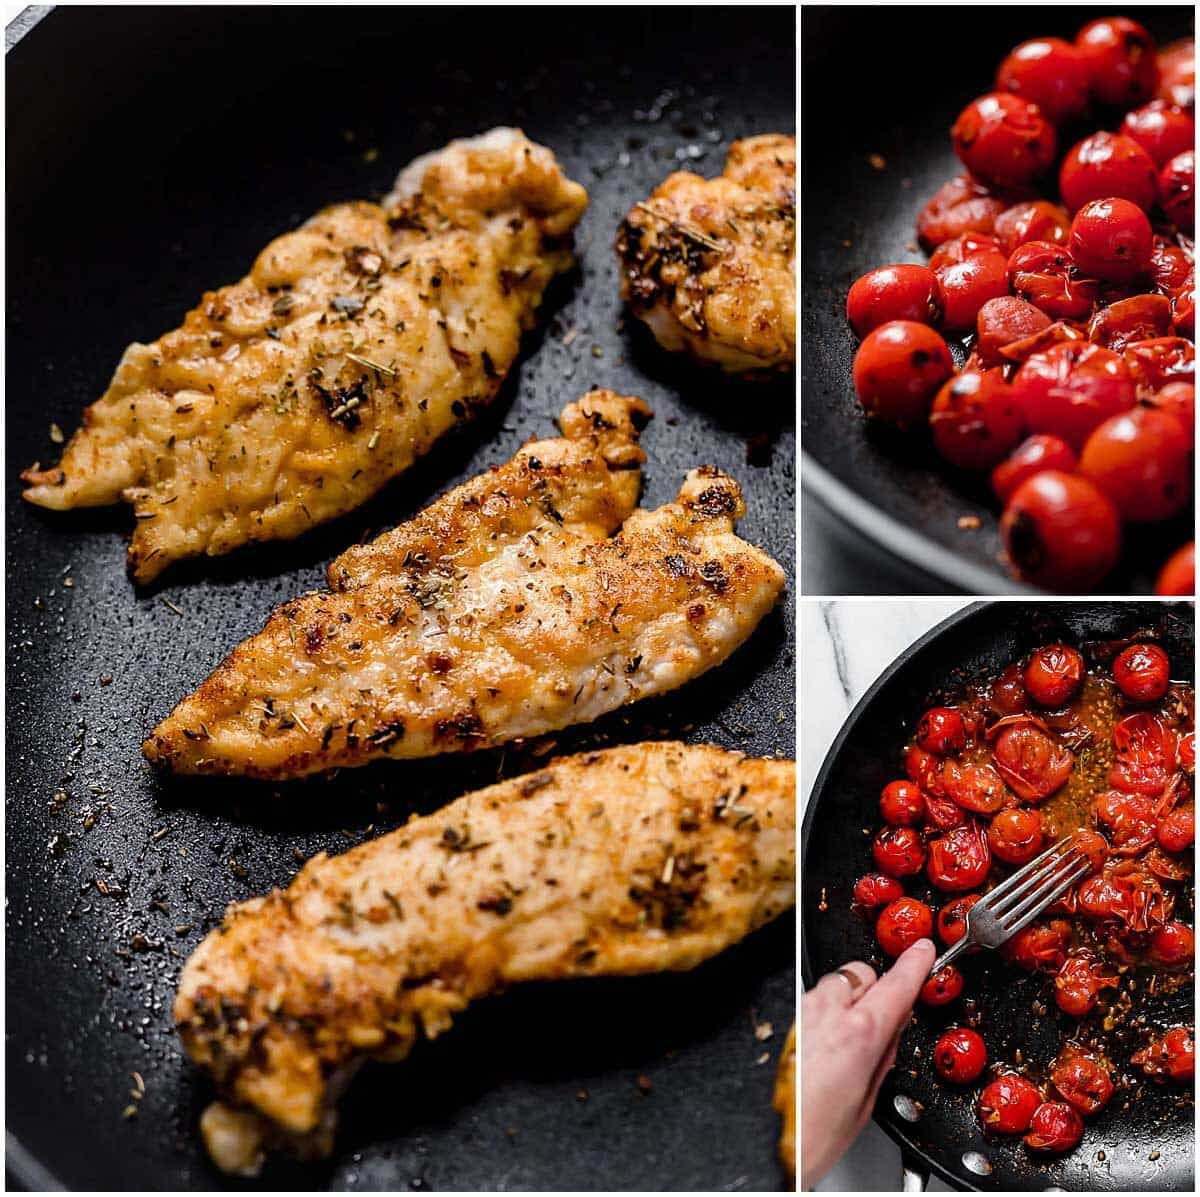 The tomato herb pan sauce is the most delicious sauce atop this chicken! The herbs, fresh tomatoes, and the juicy chicken are a great trio that you'll want on your dinner table tonight!